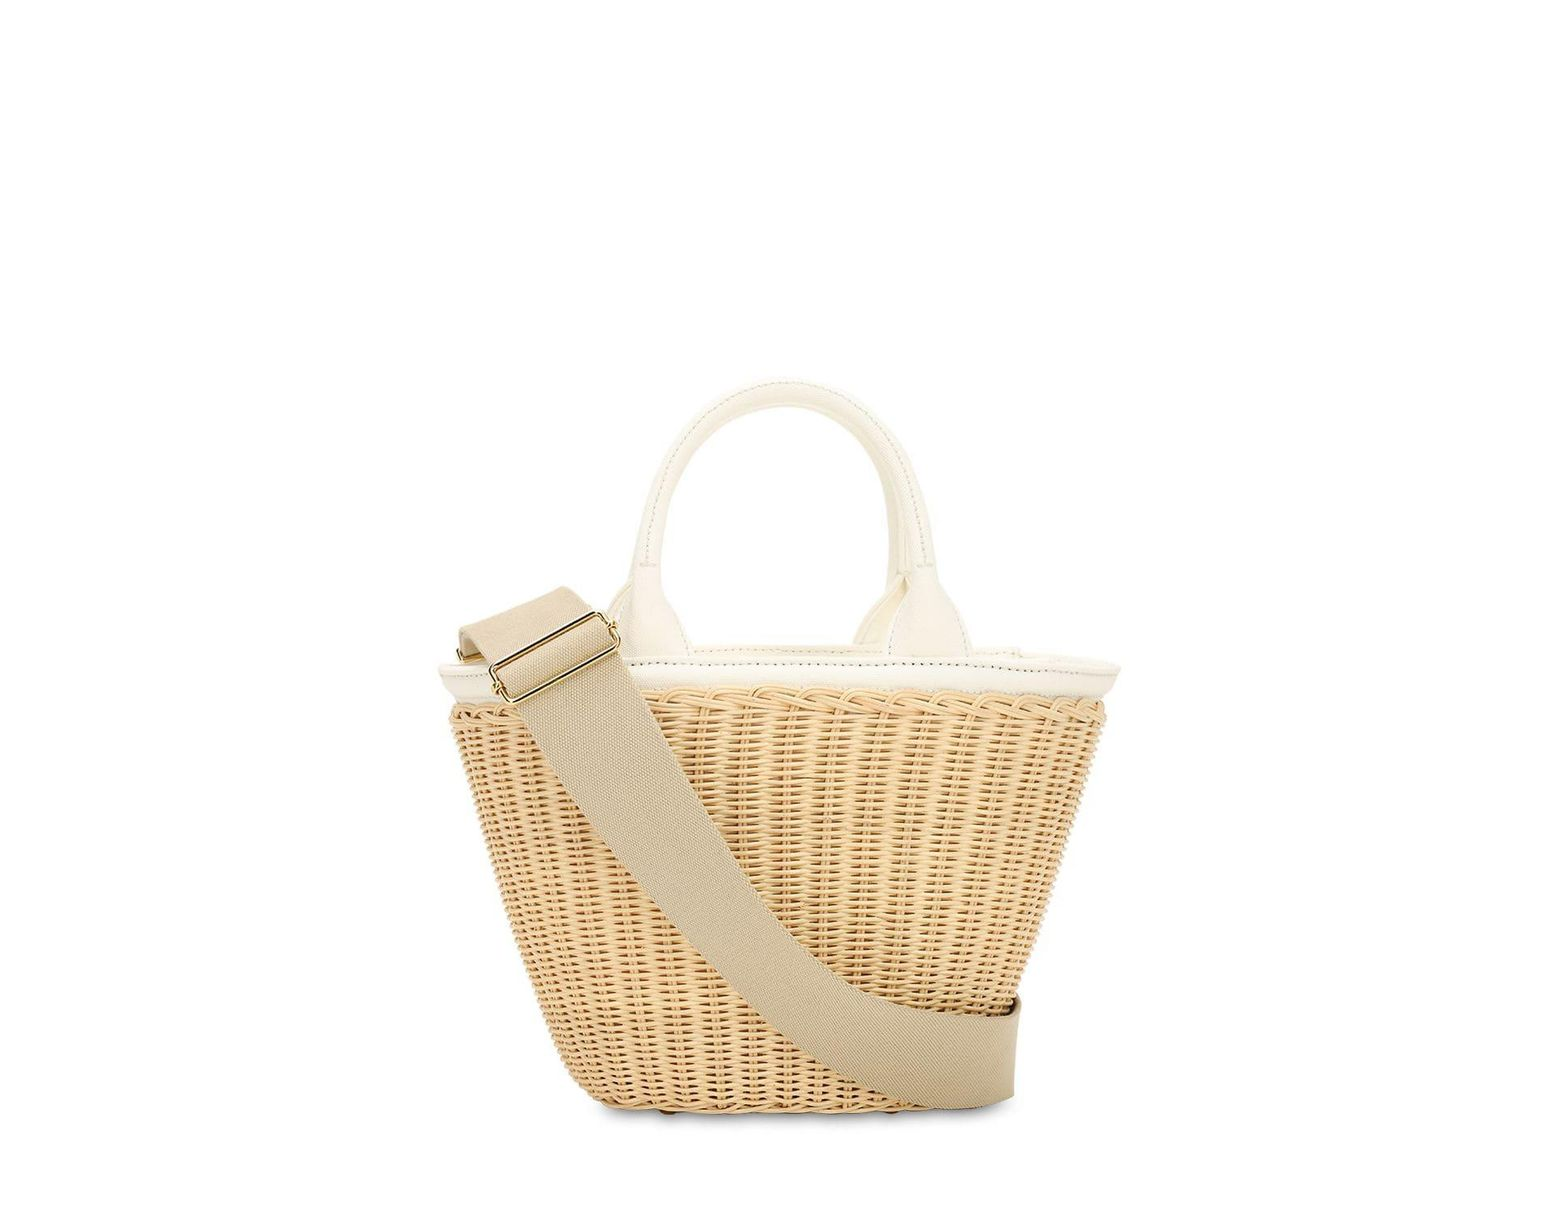 5f46cfcd9917c4 Prada Canvas & Wicker Top Handle Bag in Natural - Lyst